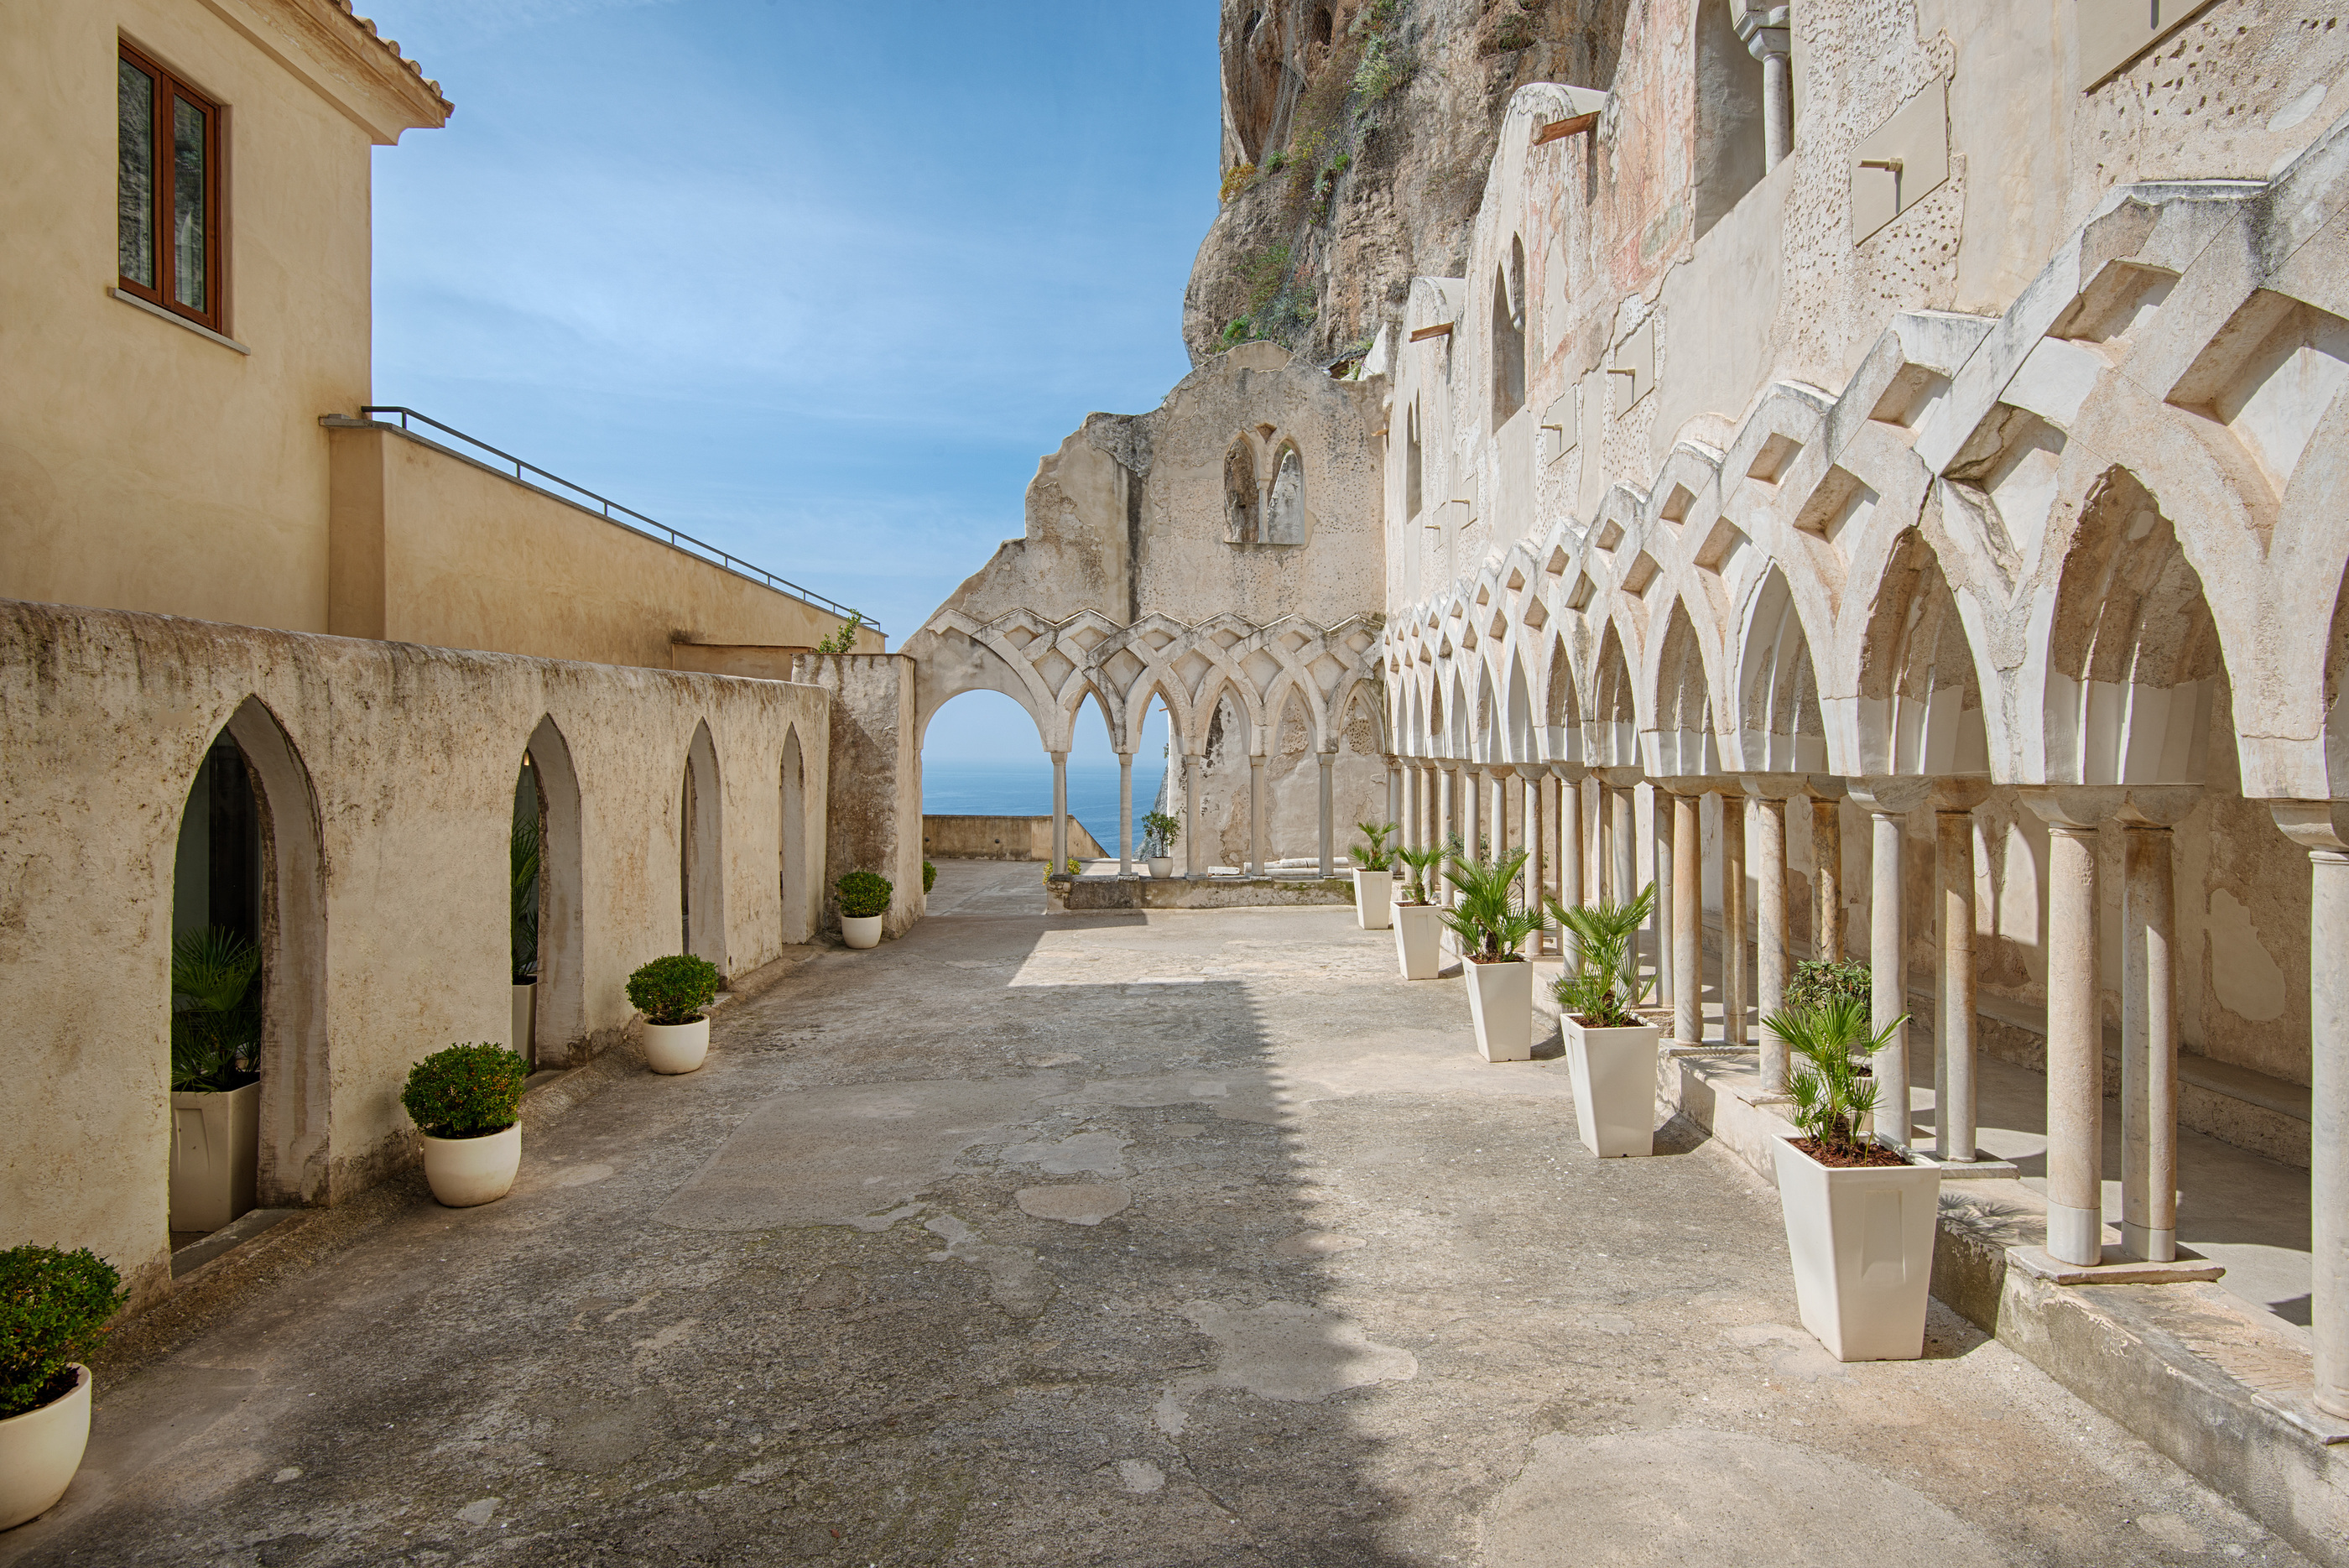 The cloister and church grand hotel convento di amalfi 5 for Convento di amalfi